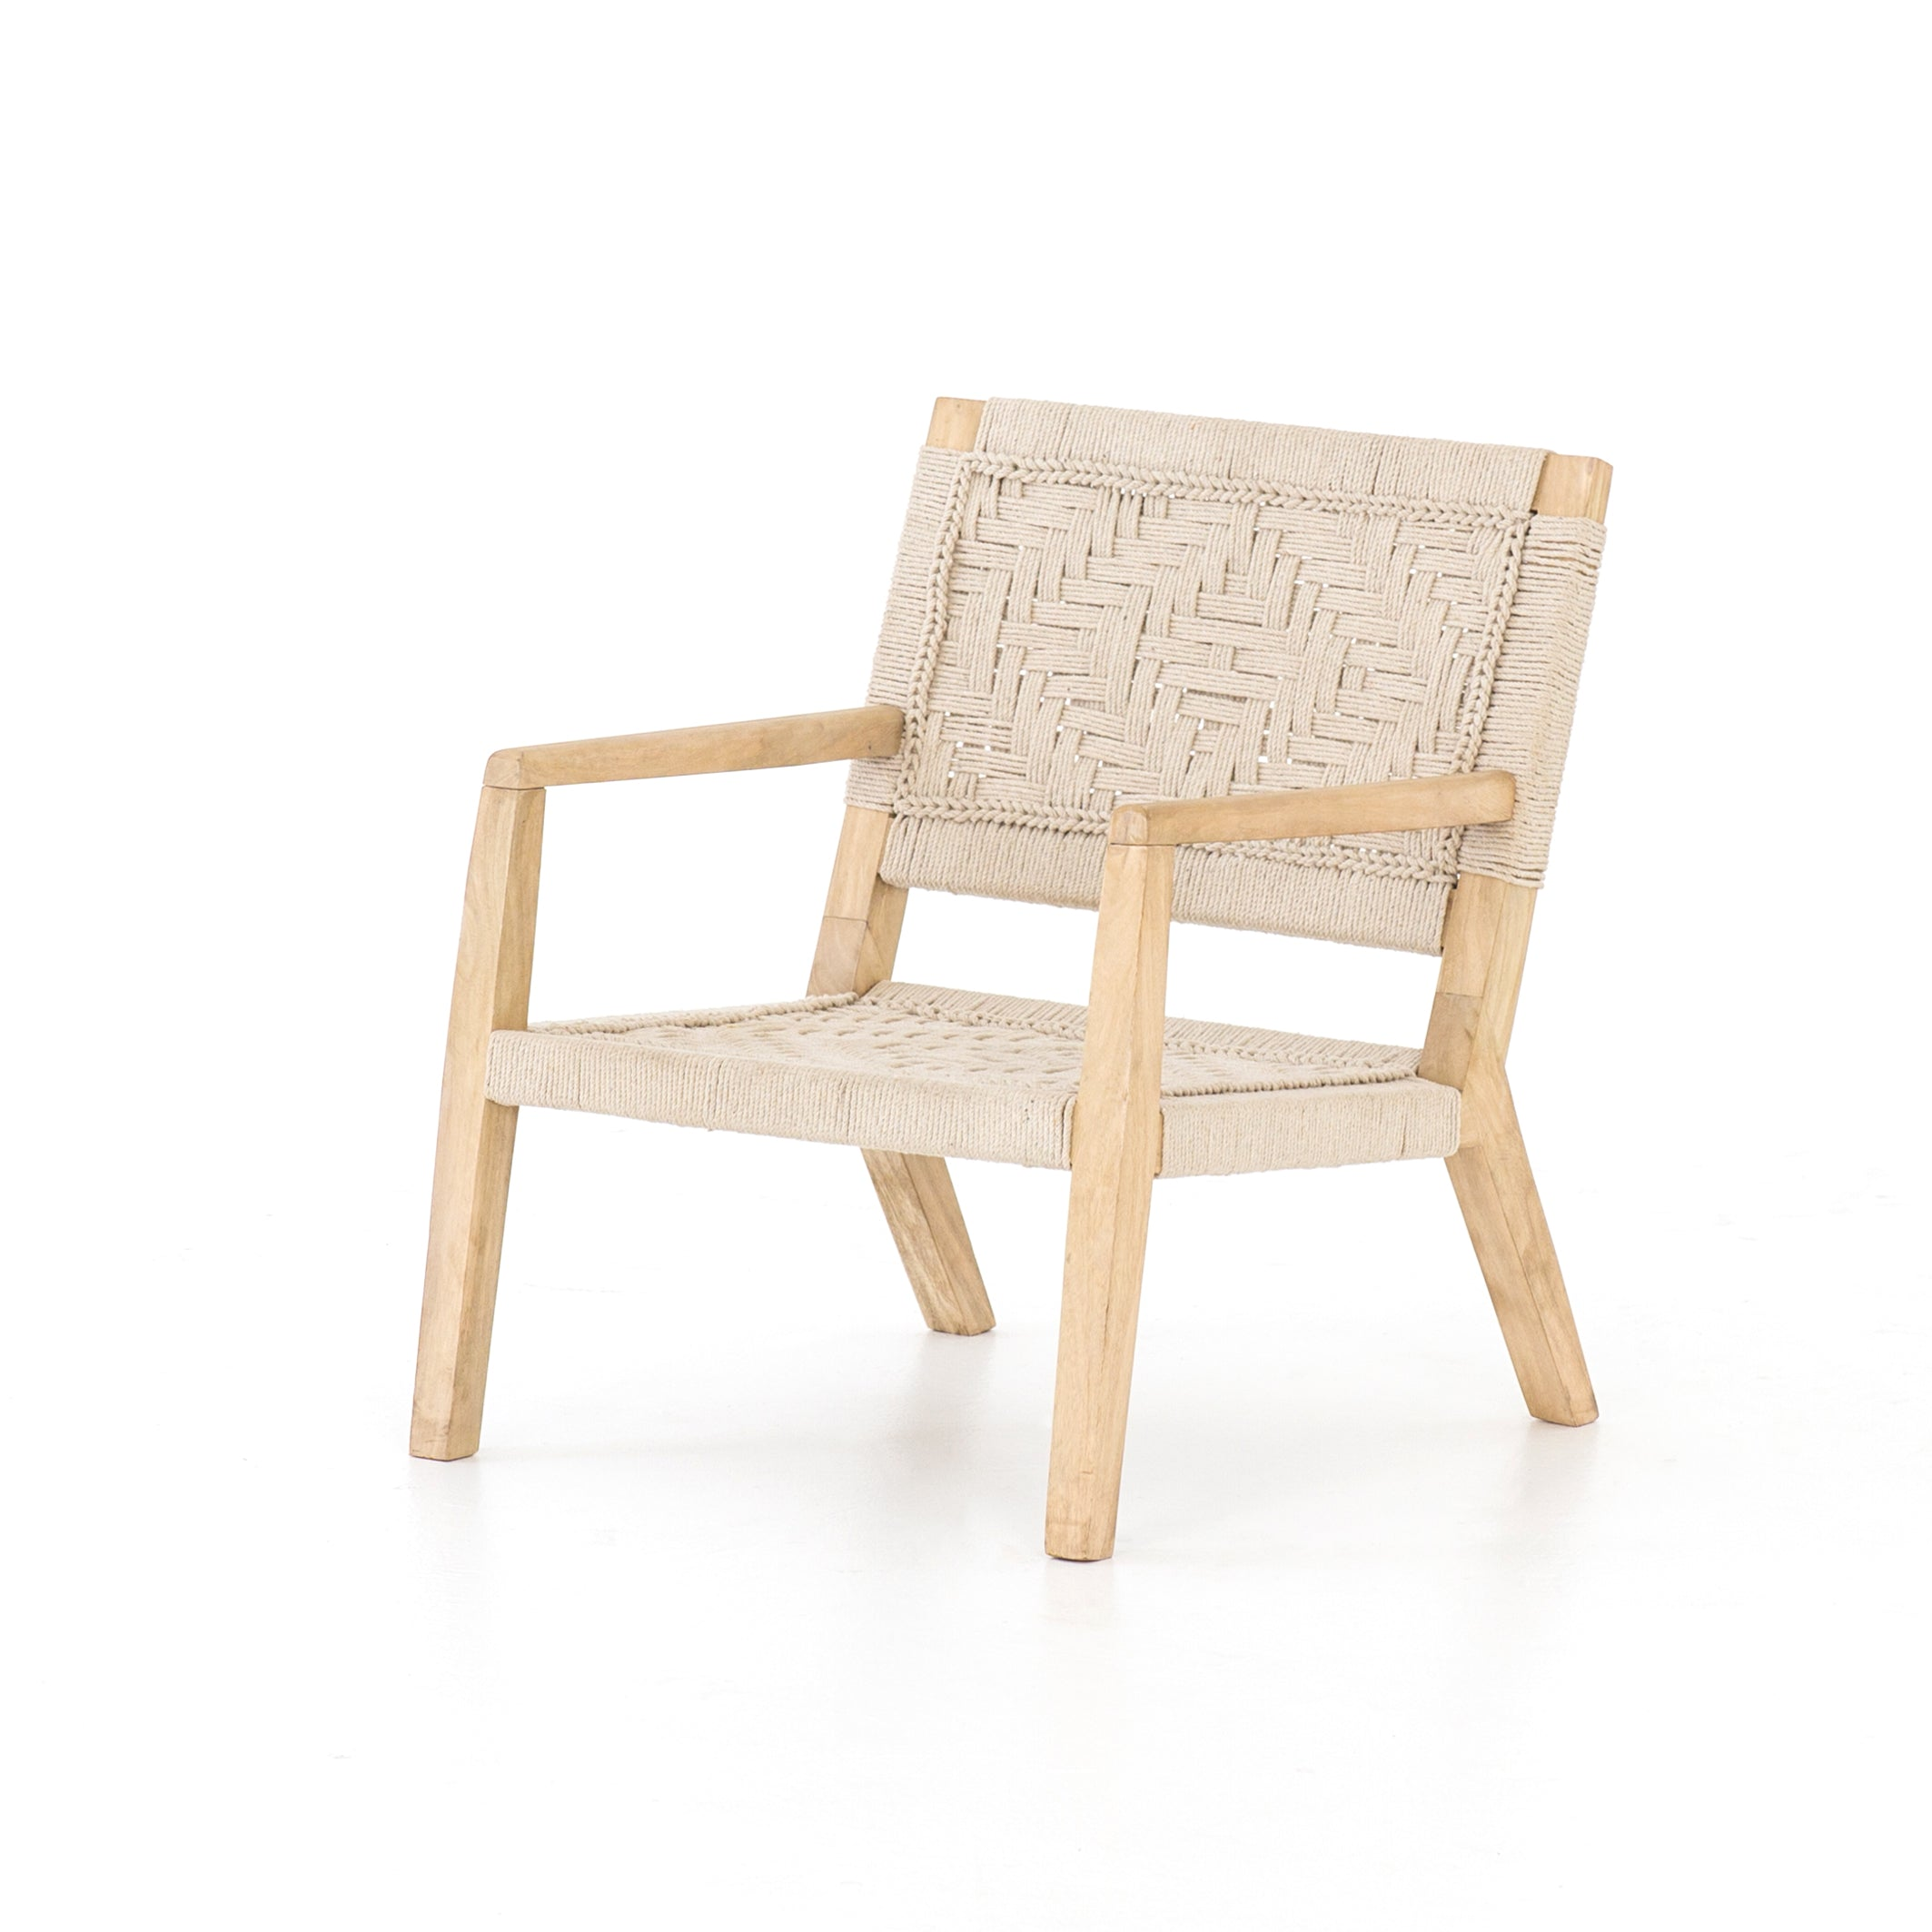 Low Side Chair With Woven Seat And Back English Country Home